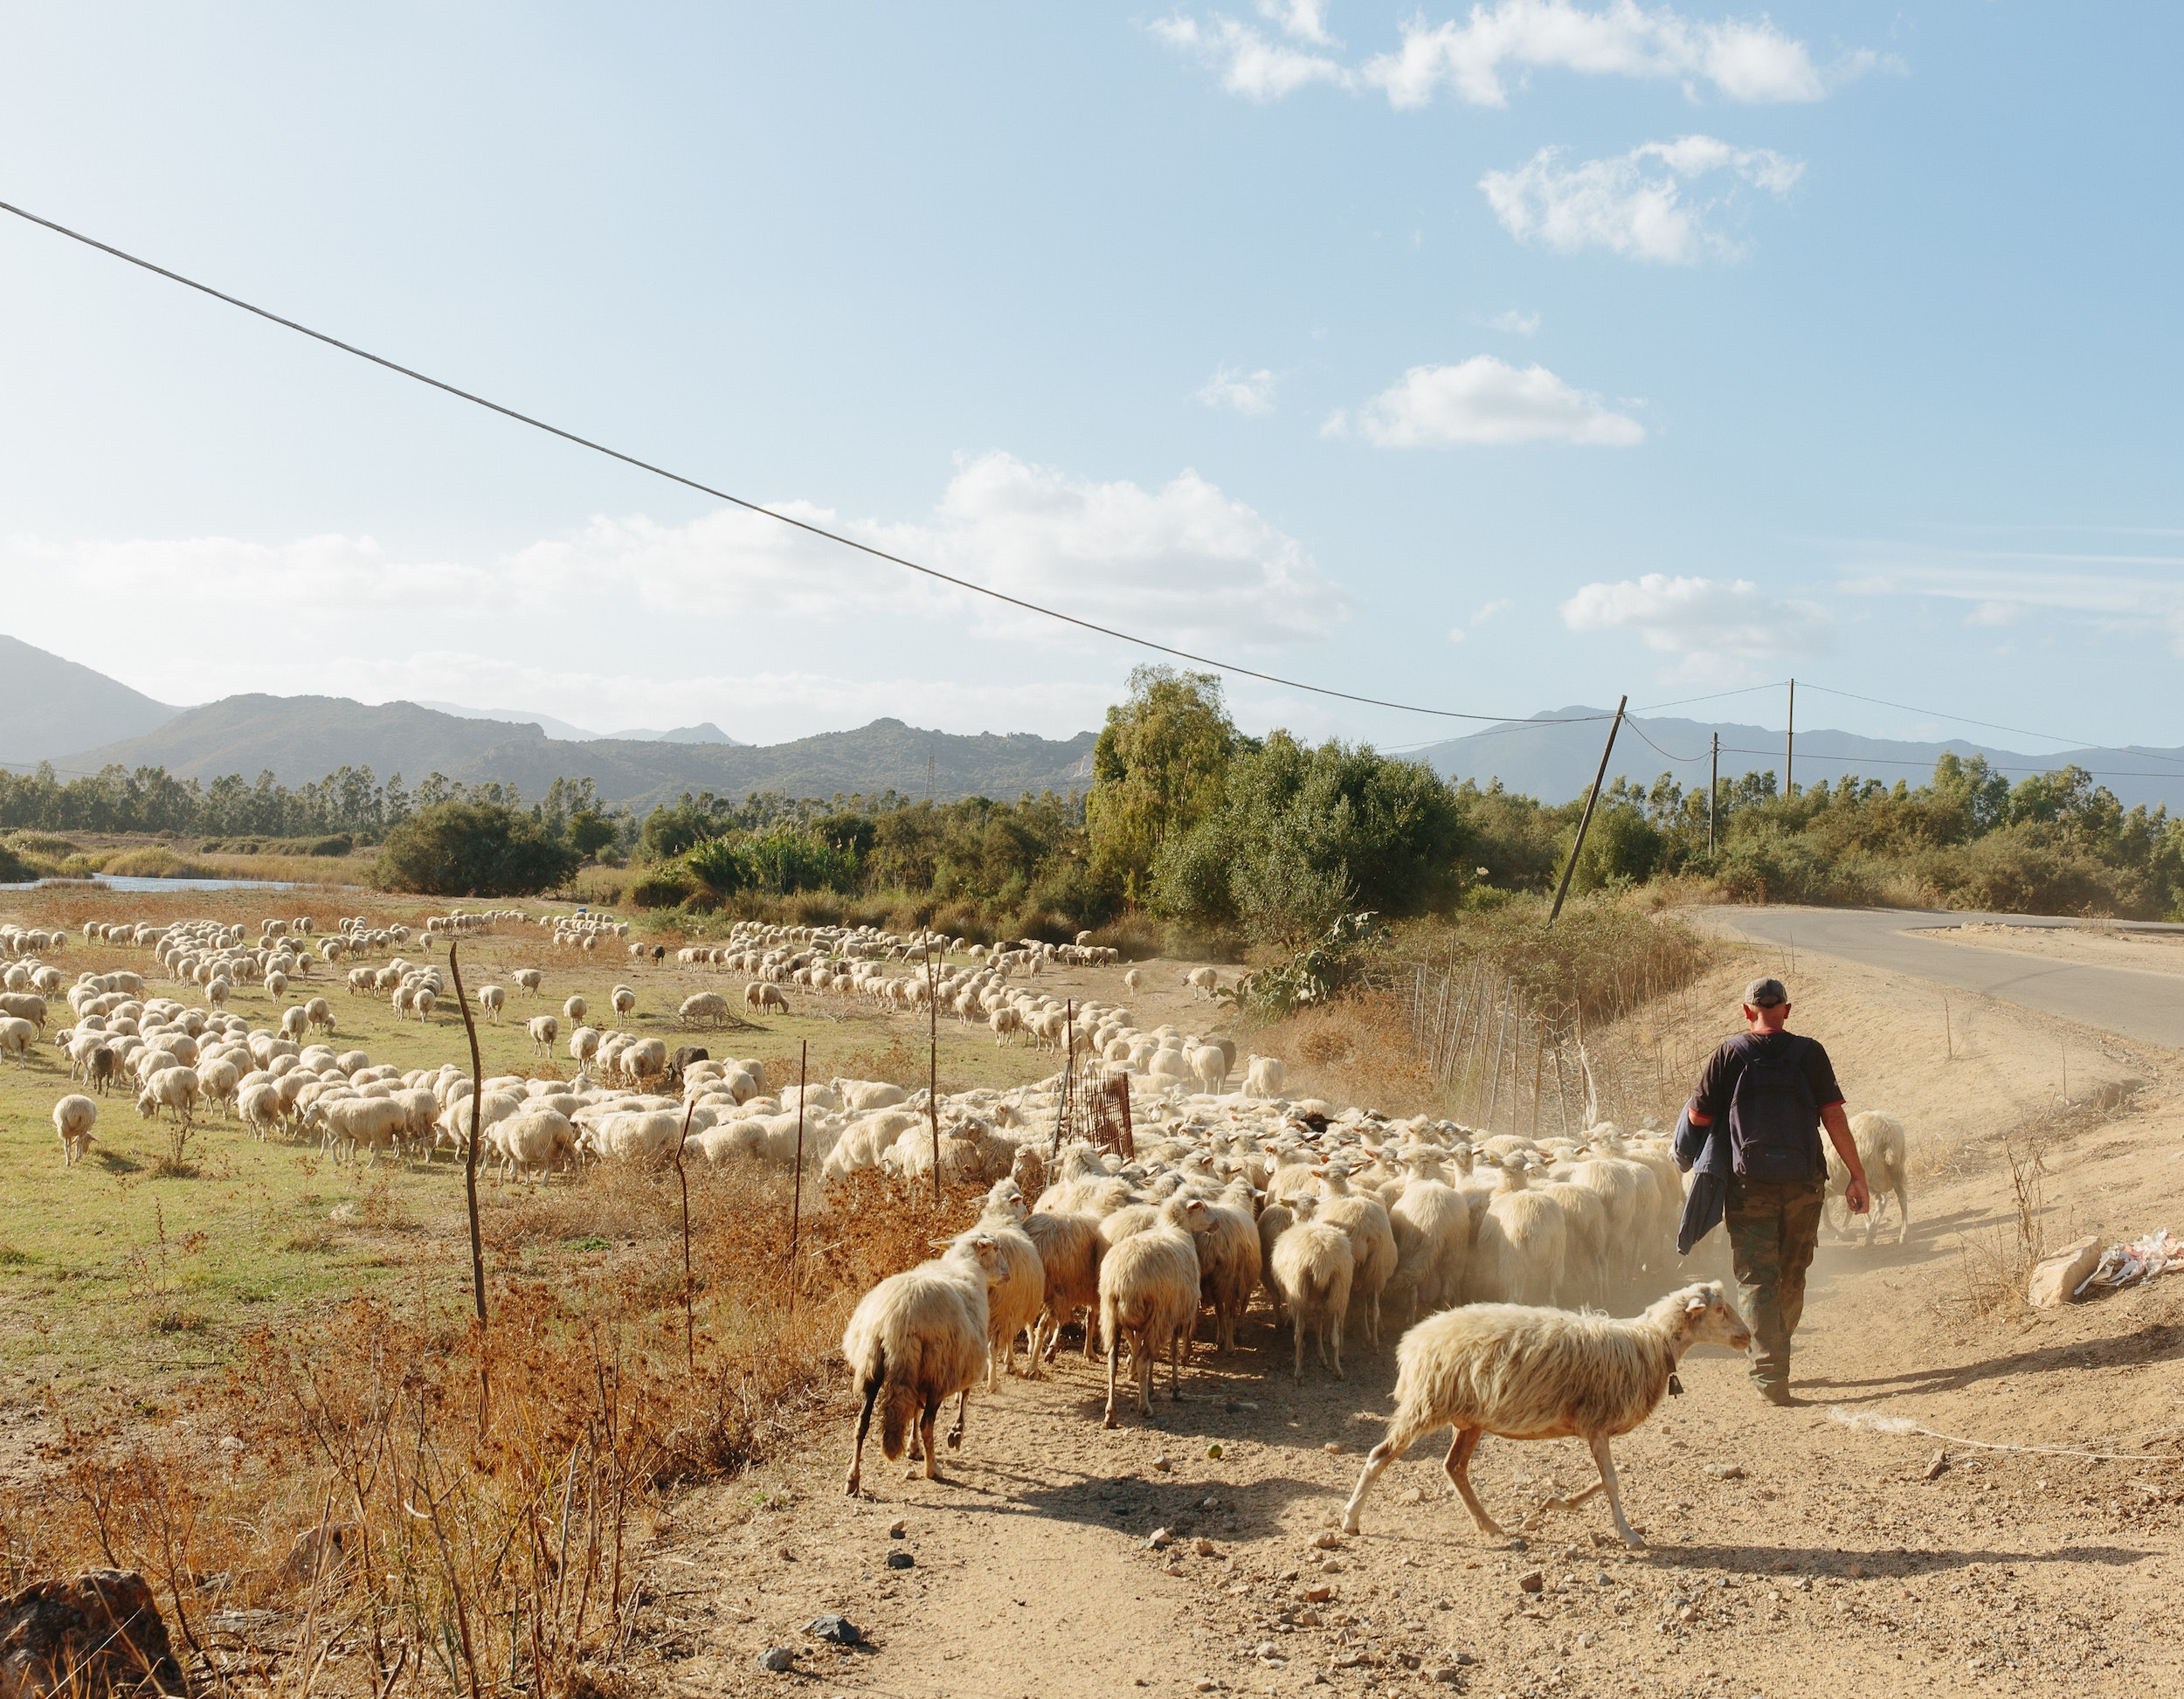 A herder corrals sheep in the rural areas of southwest Sardinia.